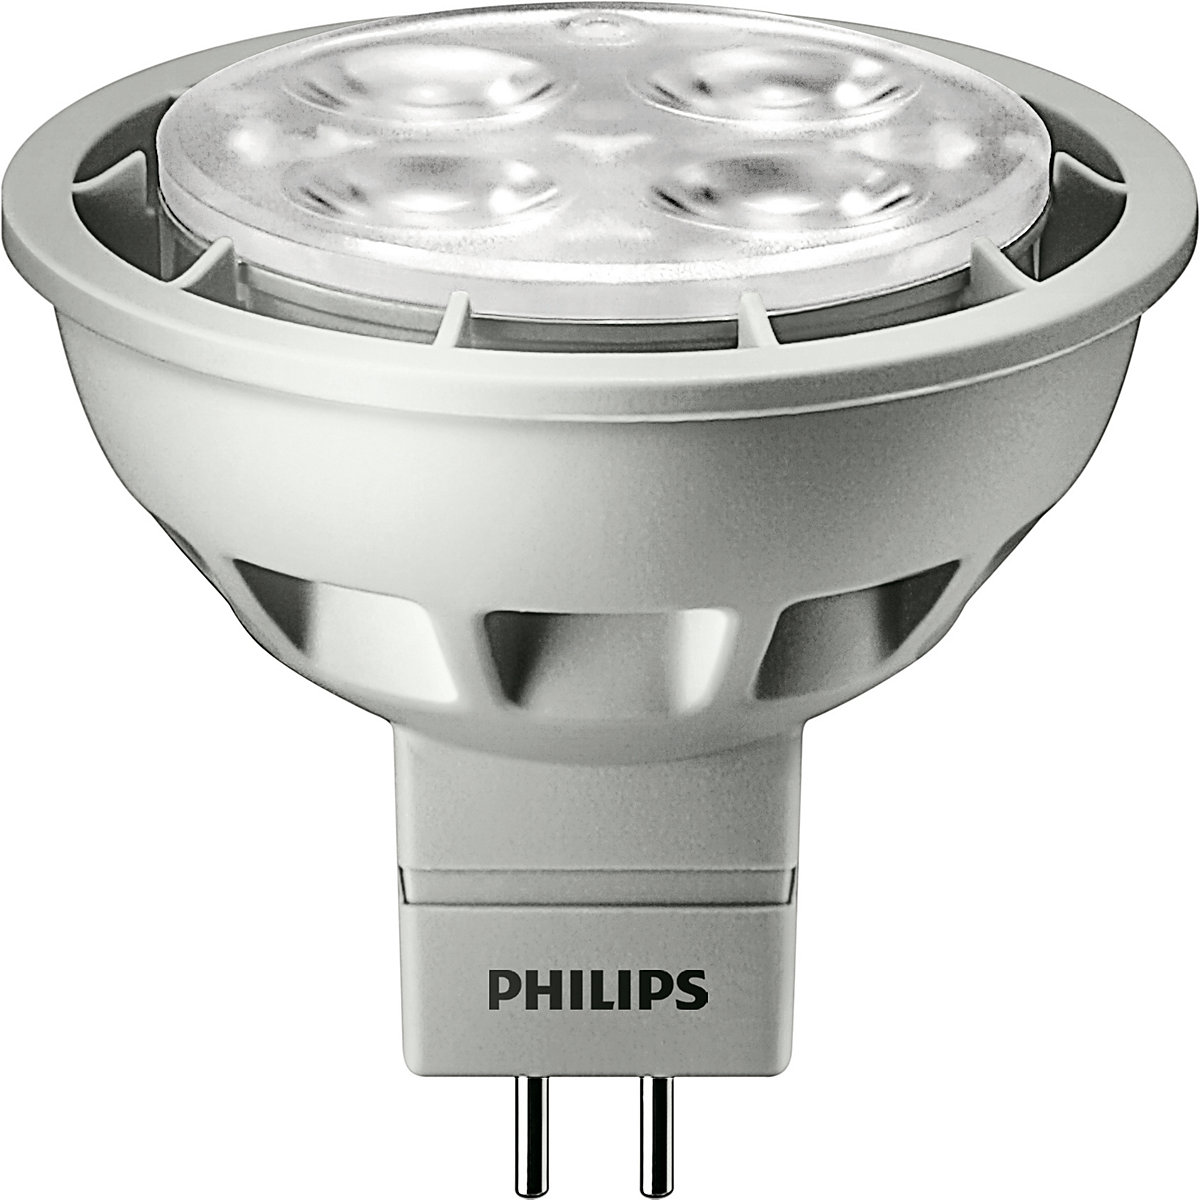 Essential Led 2 6 20w 2700k Mr16 24d Essential Led Philips Lighting